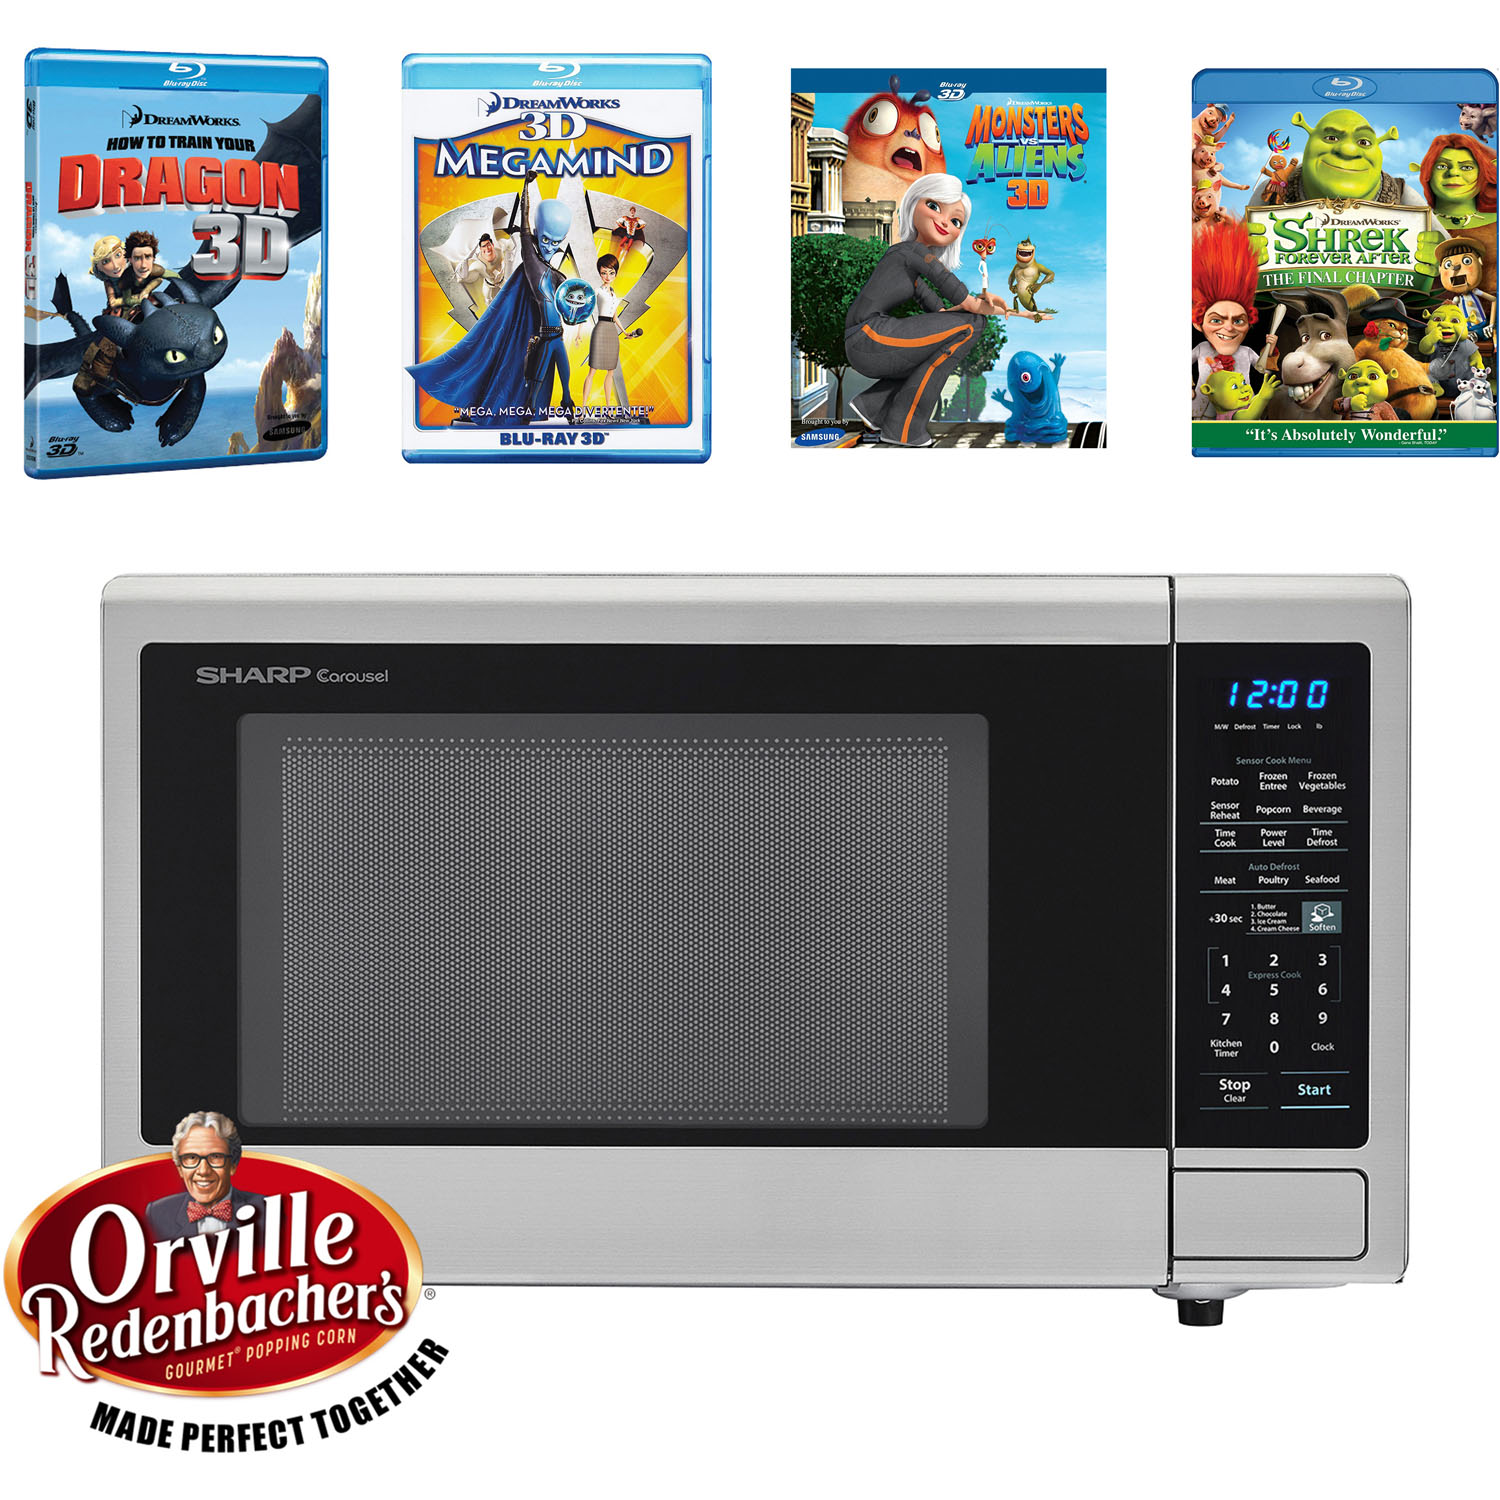 SHARP's Movie Night with Orville Redenbacher's Certified 1.4 cu. ft. Carousel Microwave Oven and 4 Blu-ray 3D Movies